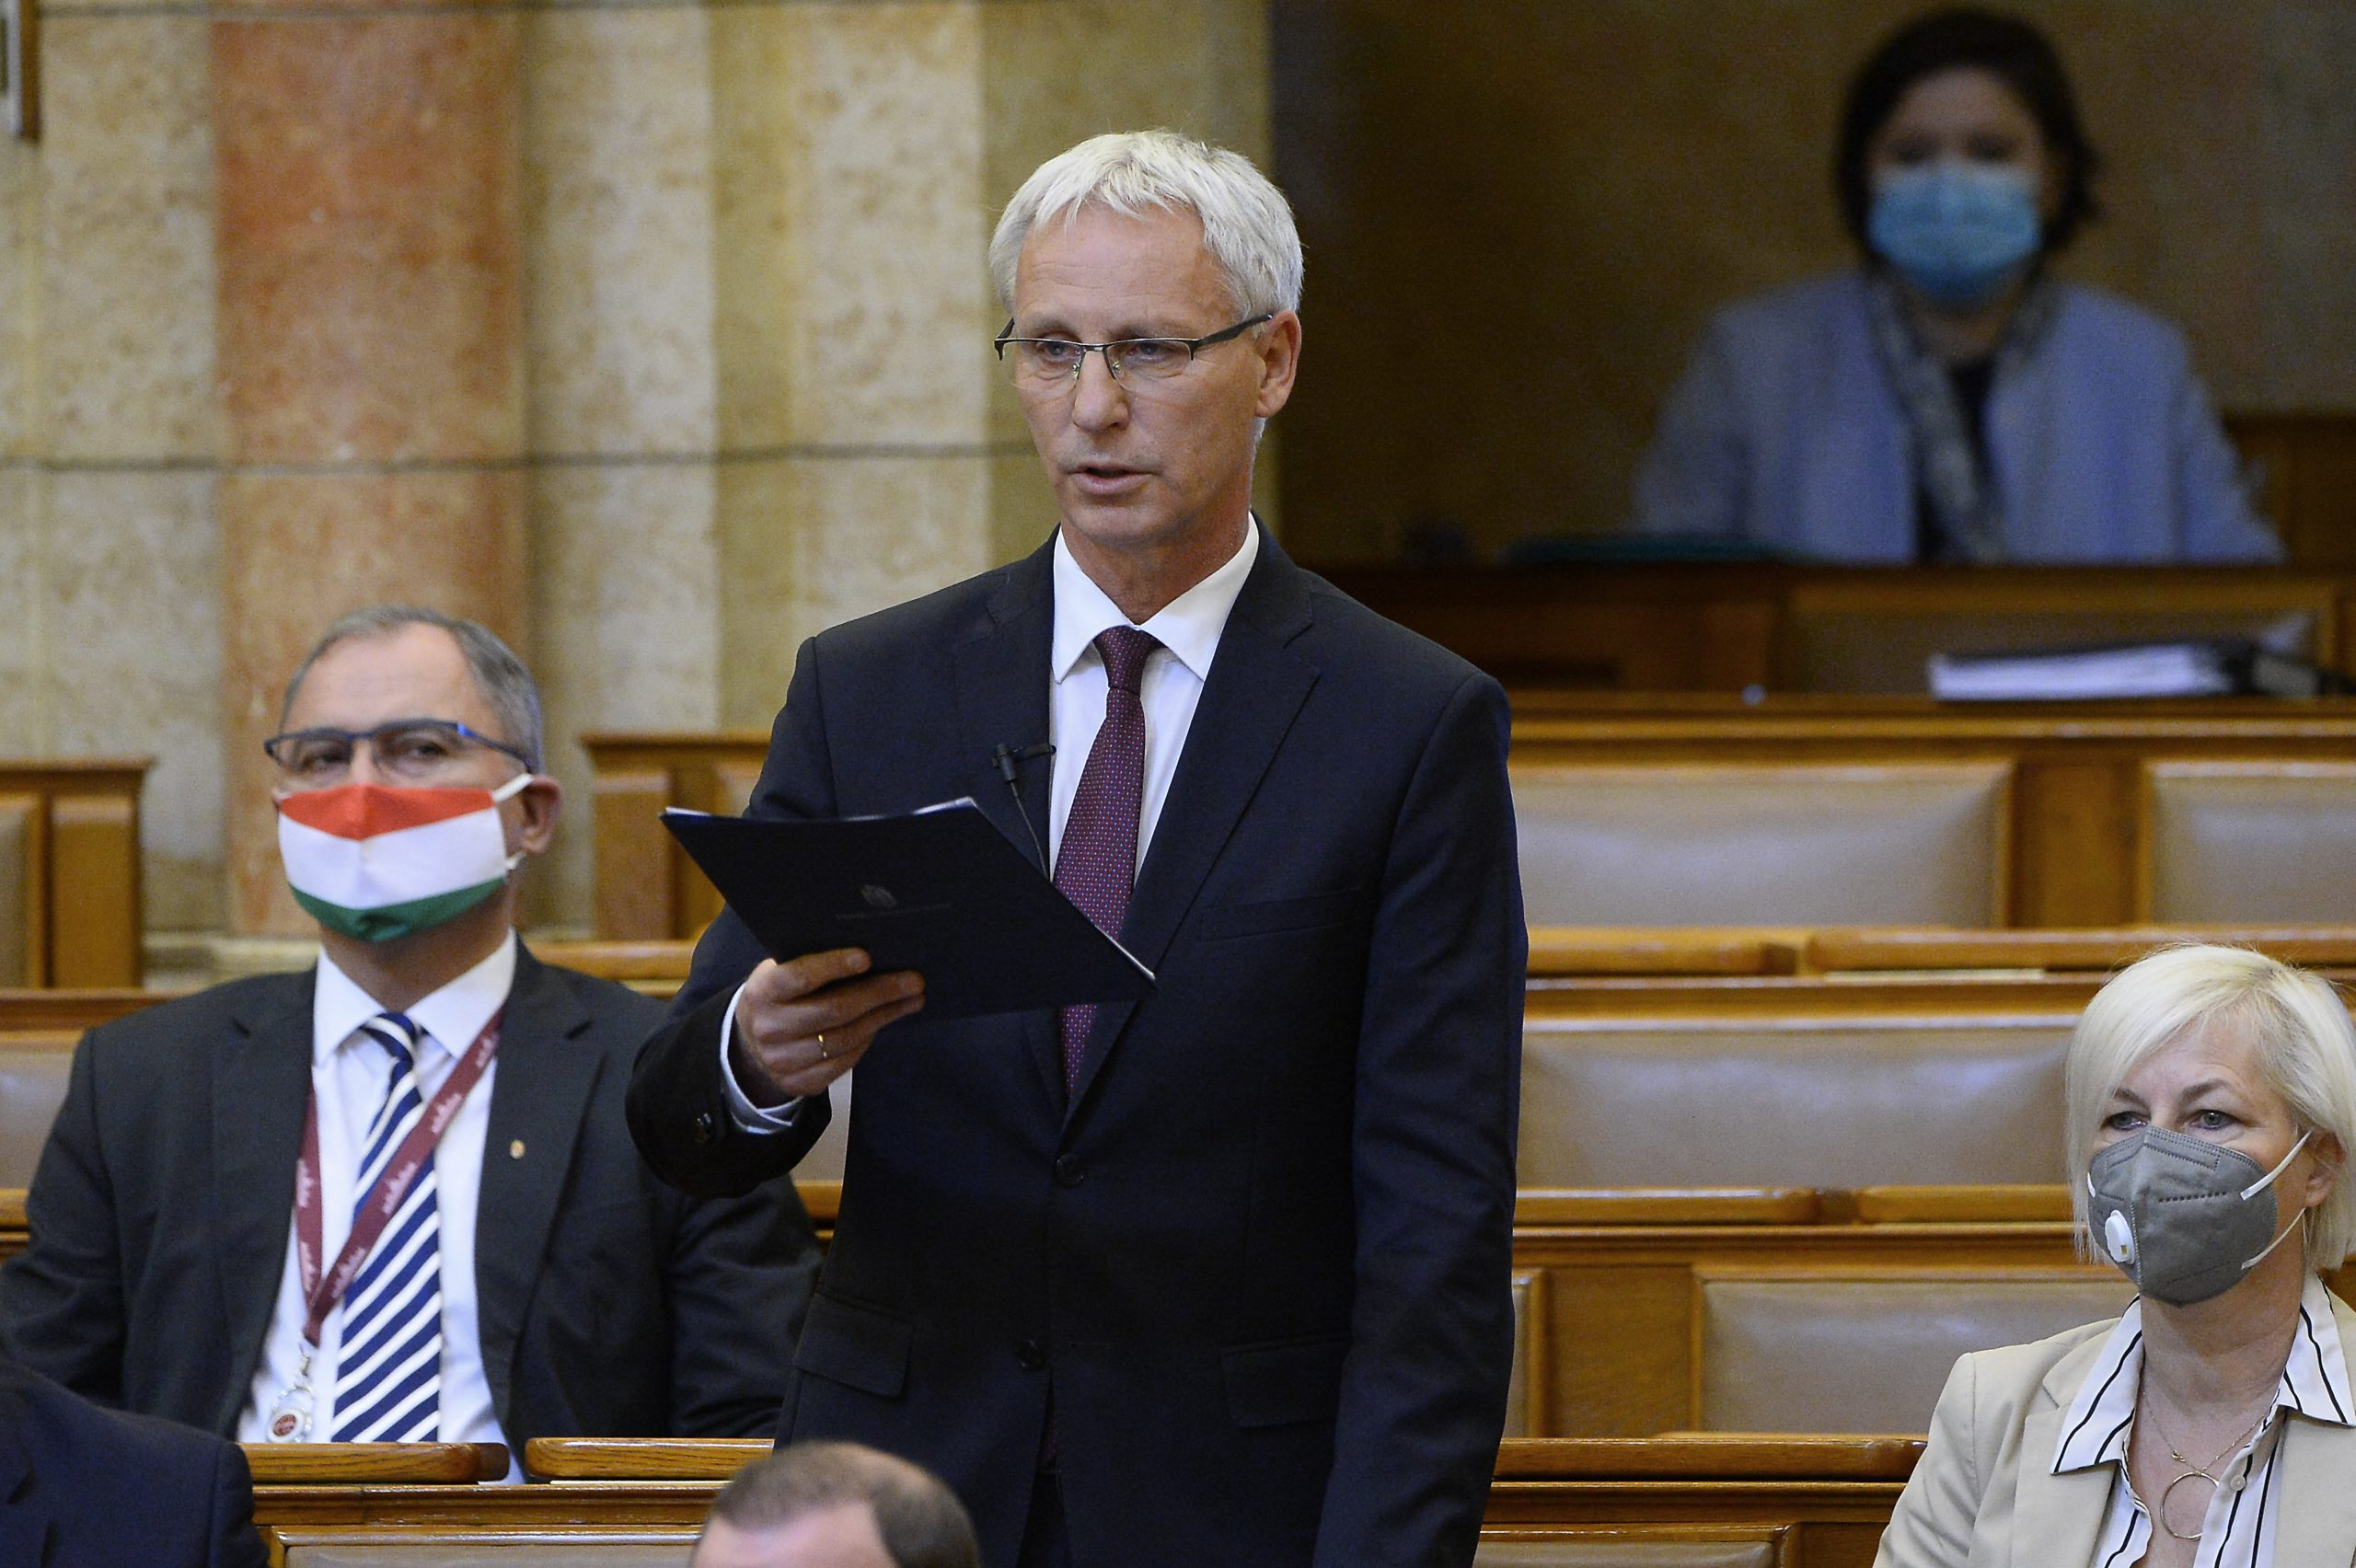 State secretary Soltész: Hungary's Child Protection Law Not Aimed Against LGBTQ People